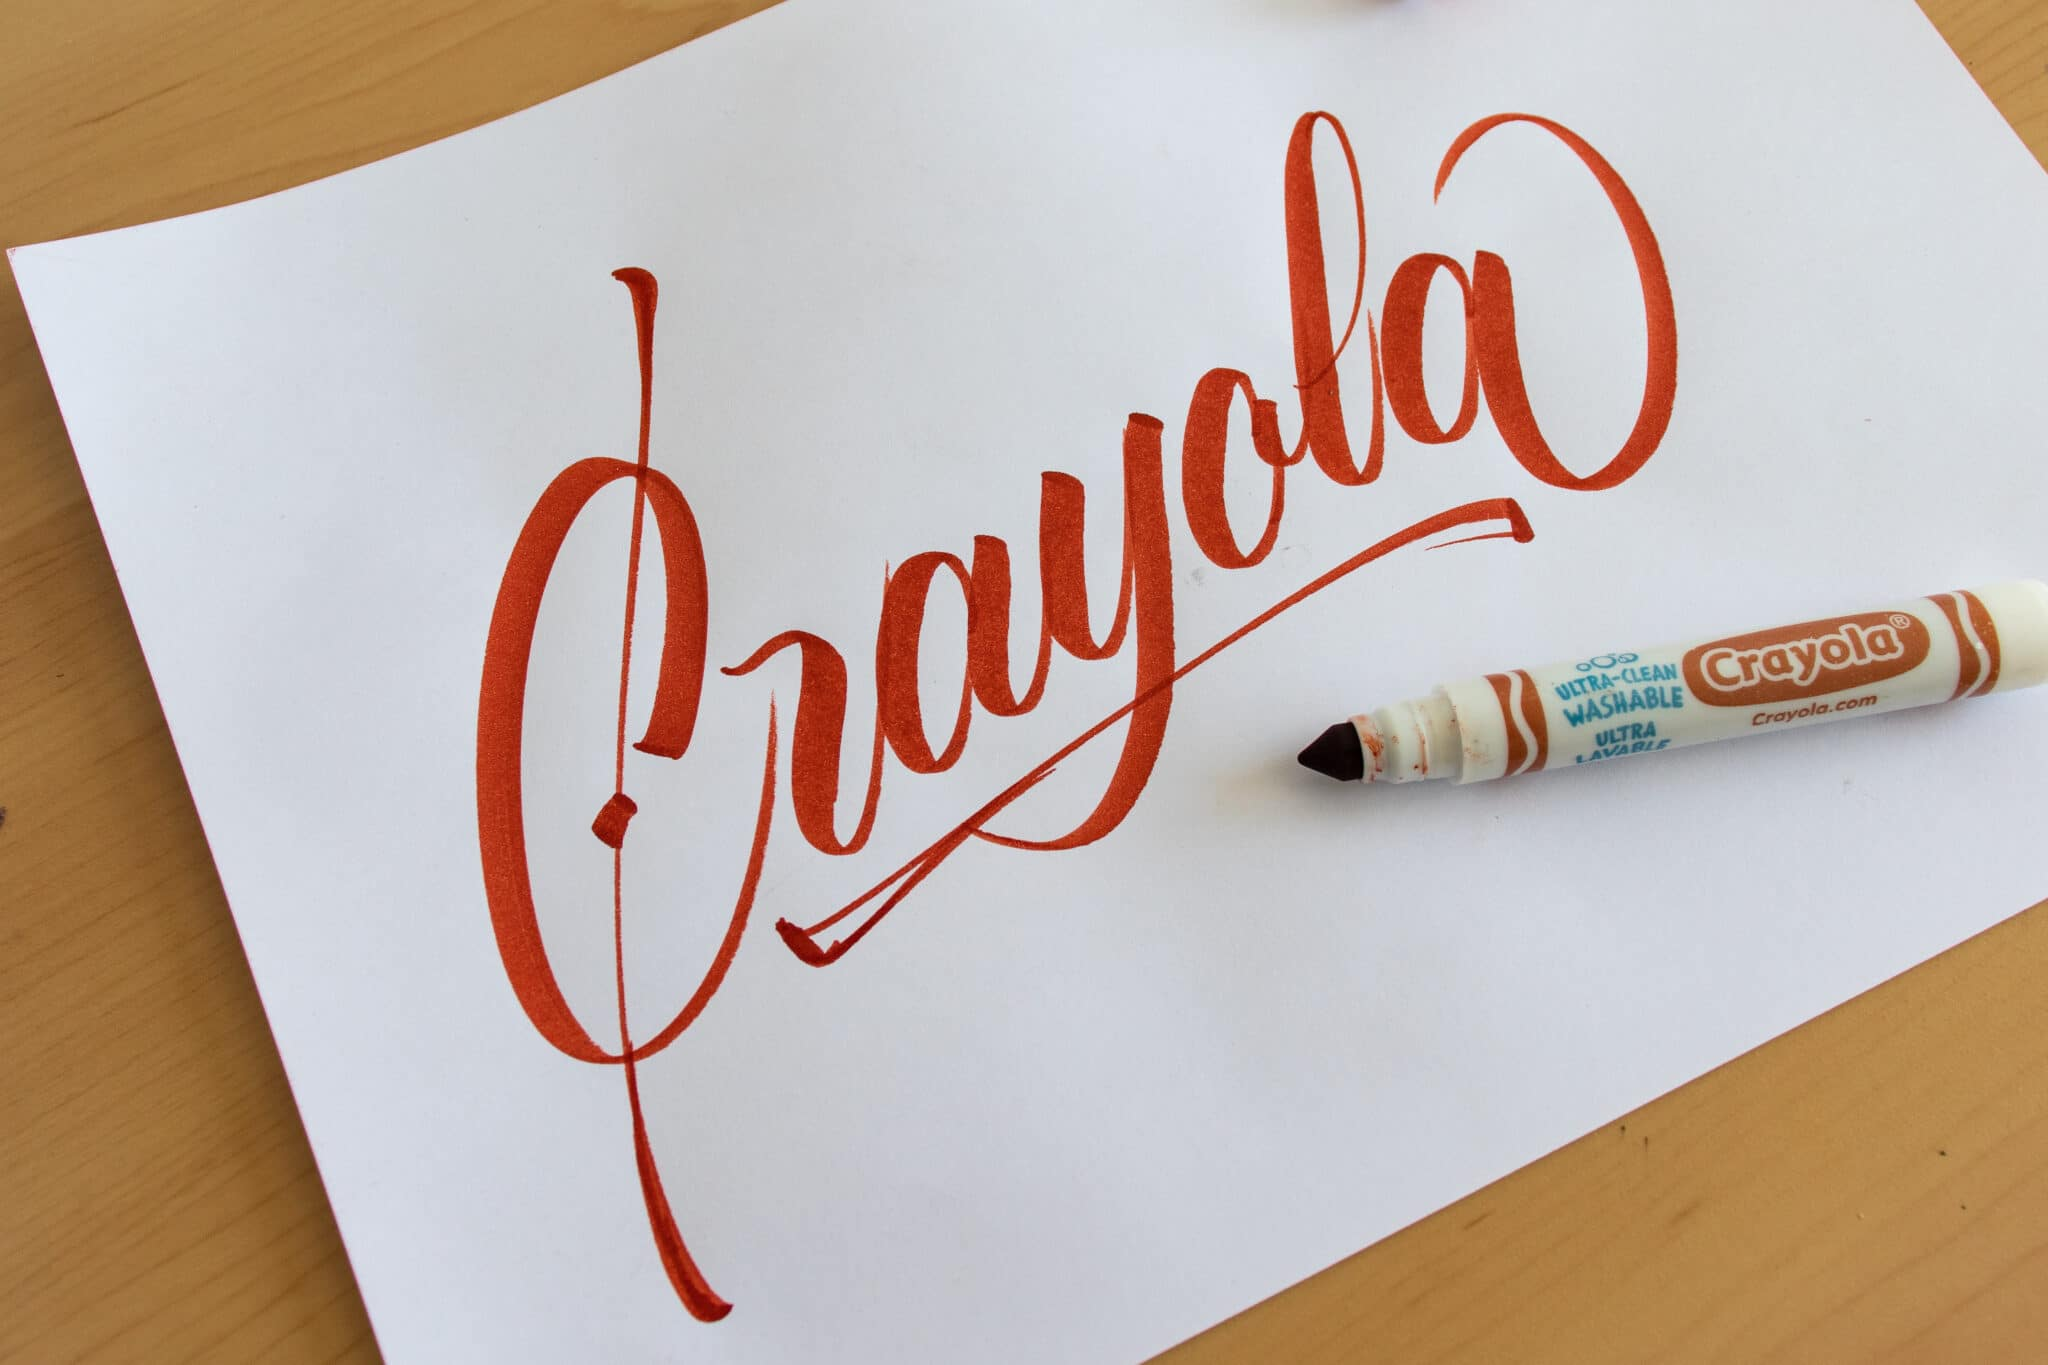 Crayola Marker - sample calligraphy